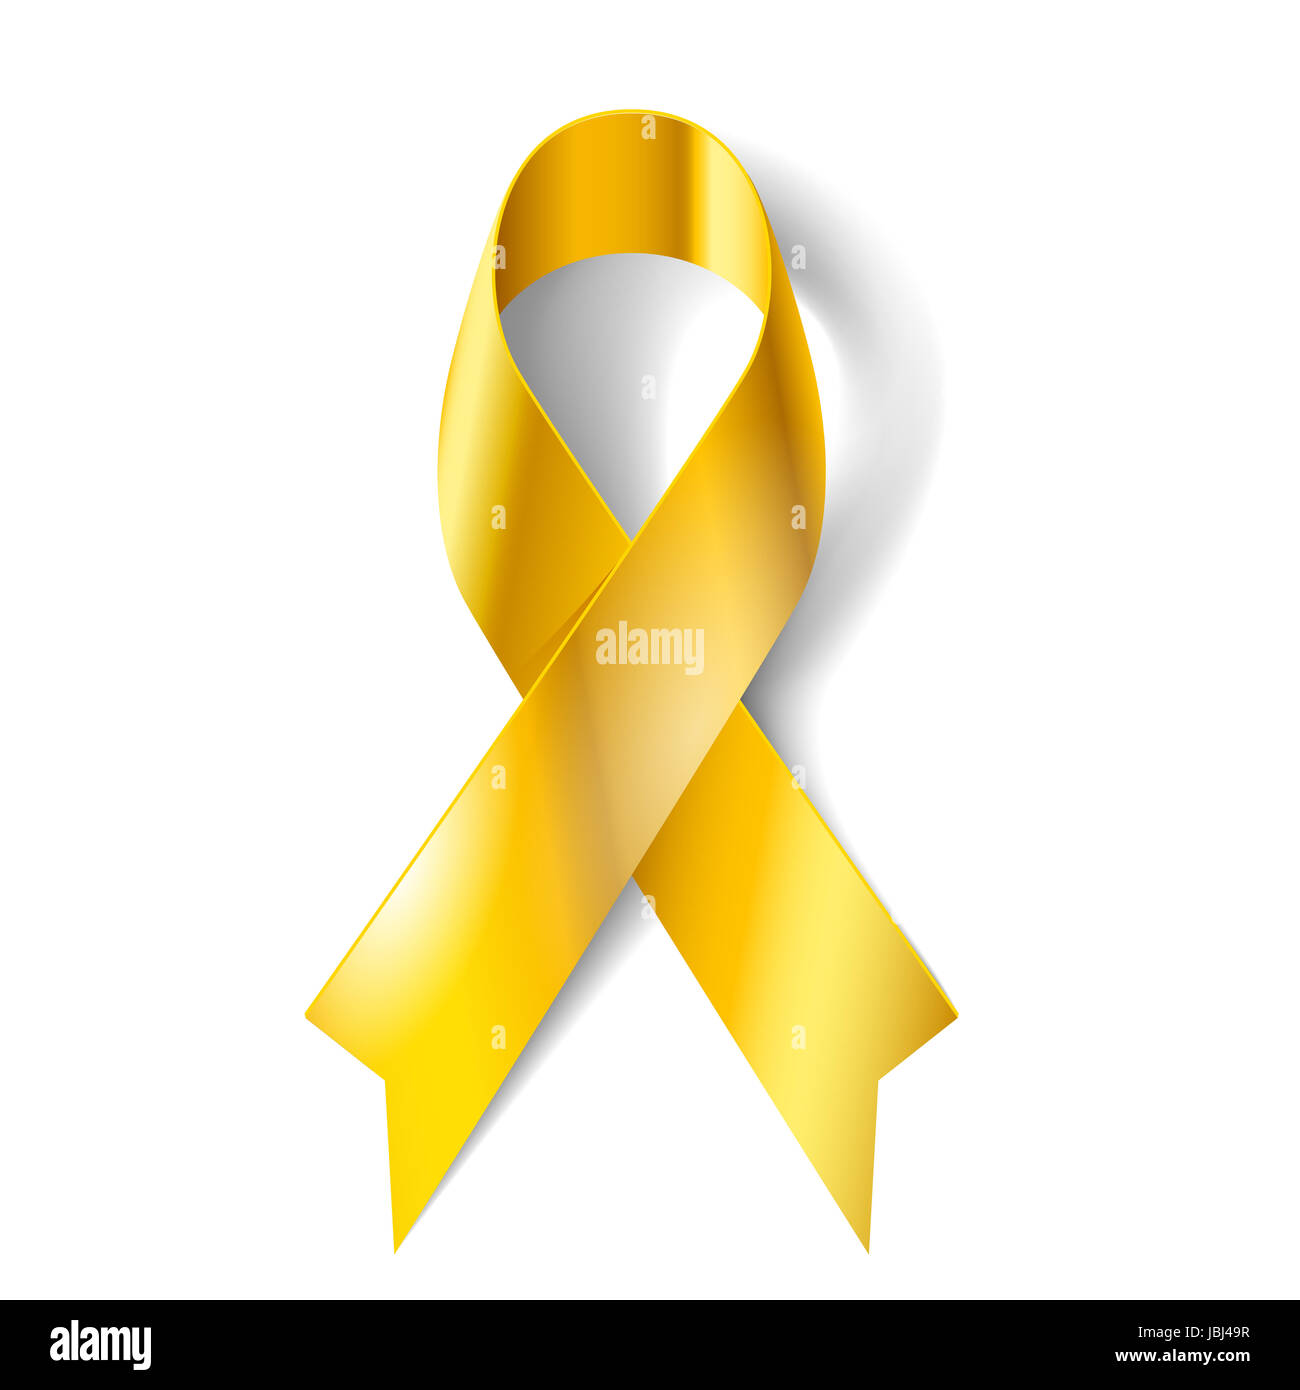 Gold Ribbon As Symbol Of Childhood Cancer Awareness Stock Photo